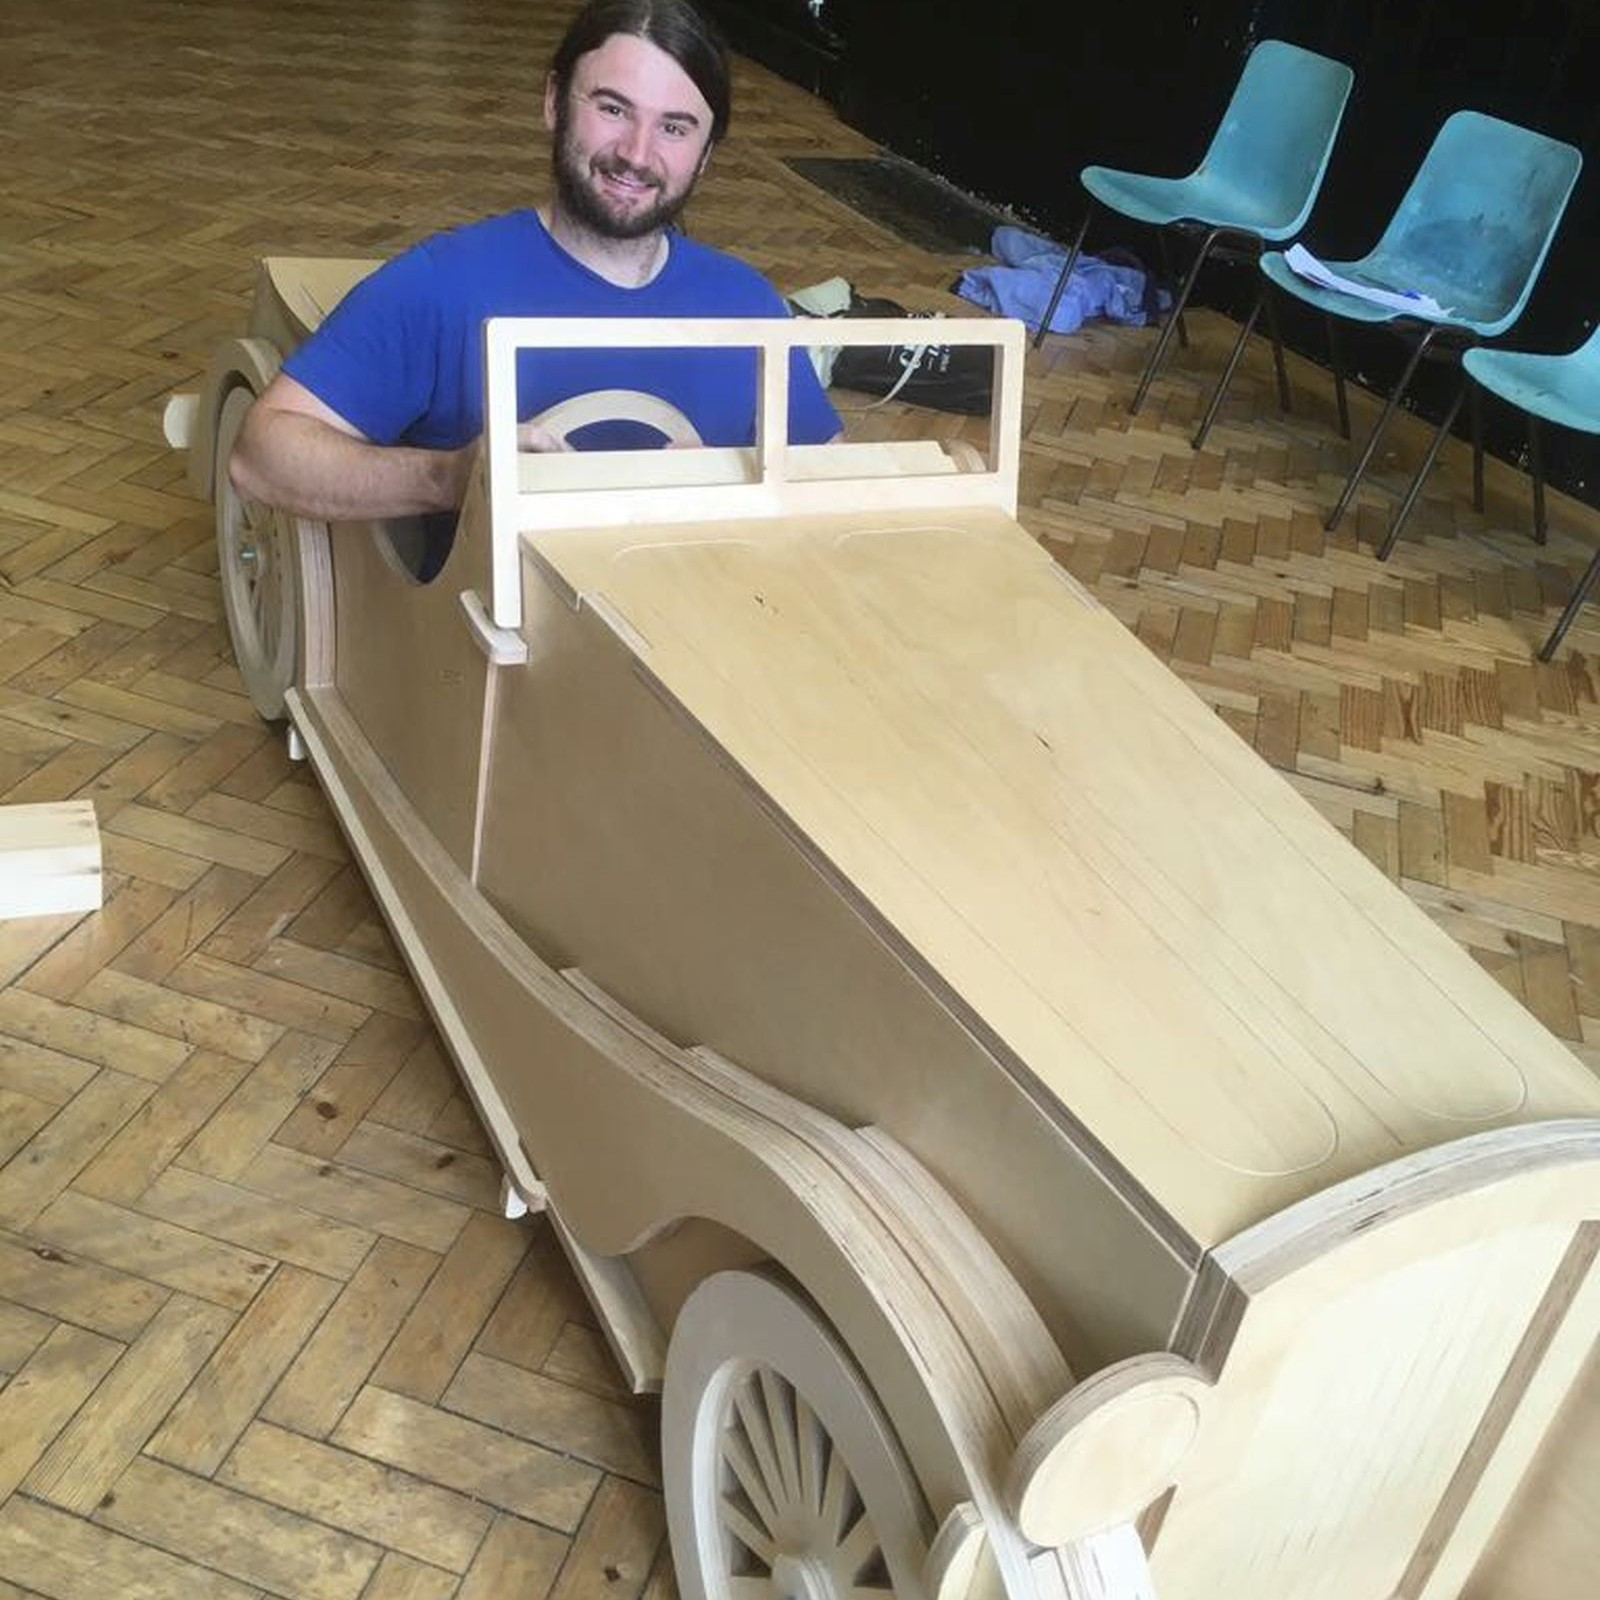 The Tornycroft Girls - This car was made entirely from 18mm Birch plywood and was designed to be assembled during the performance.